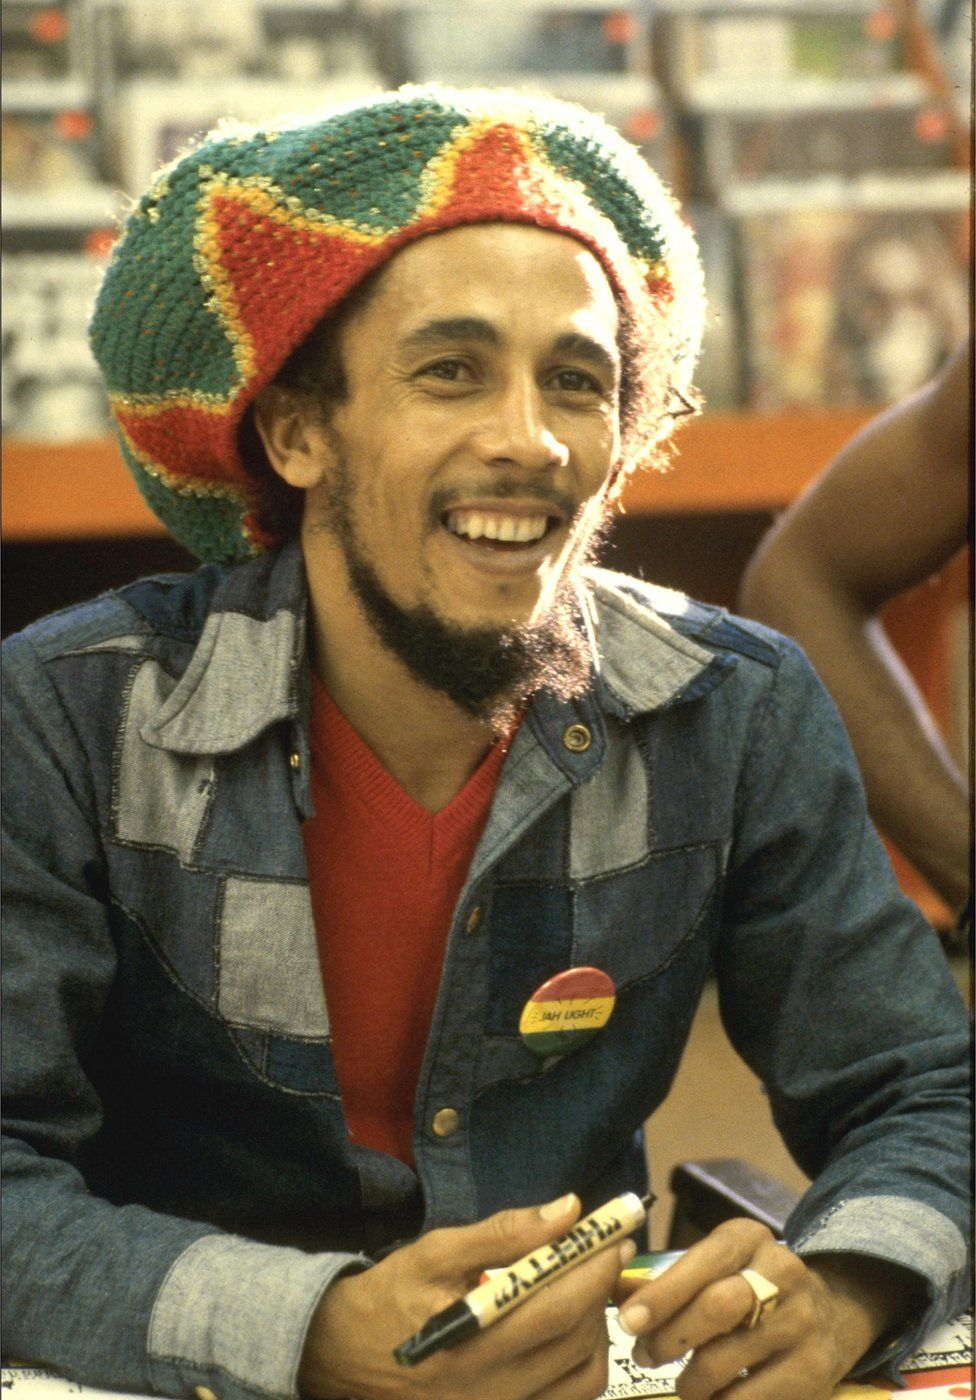 40 years of Marley's death: Spotlight on the sickness that killed him